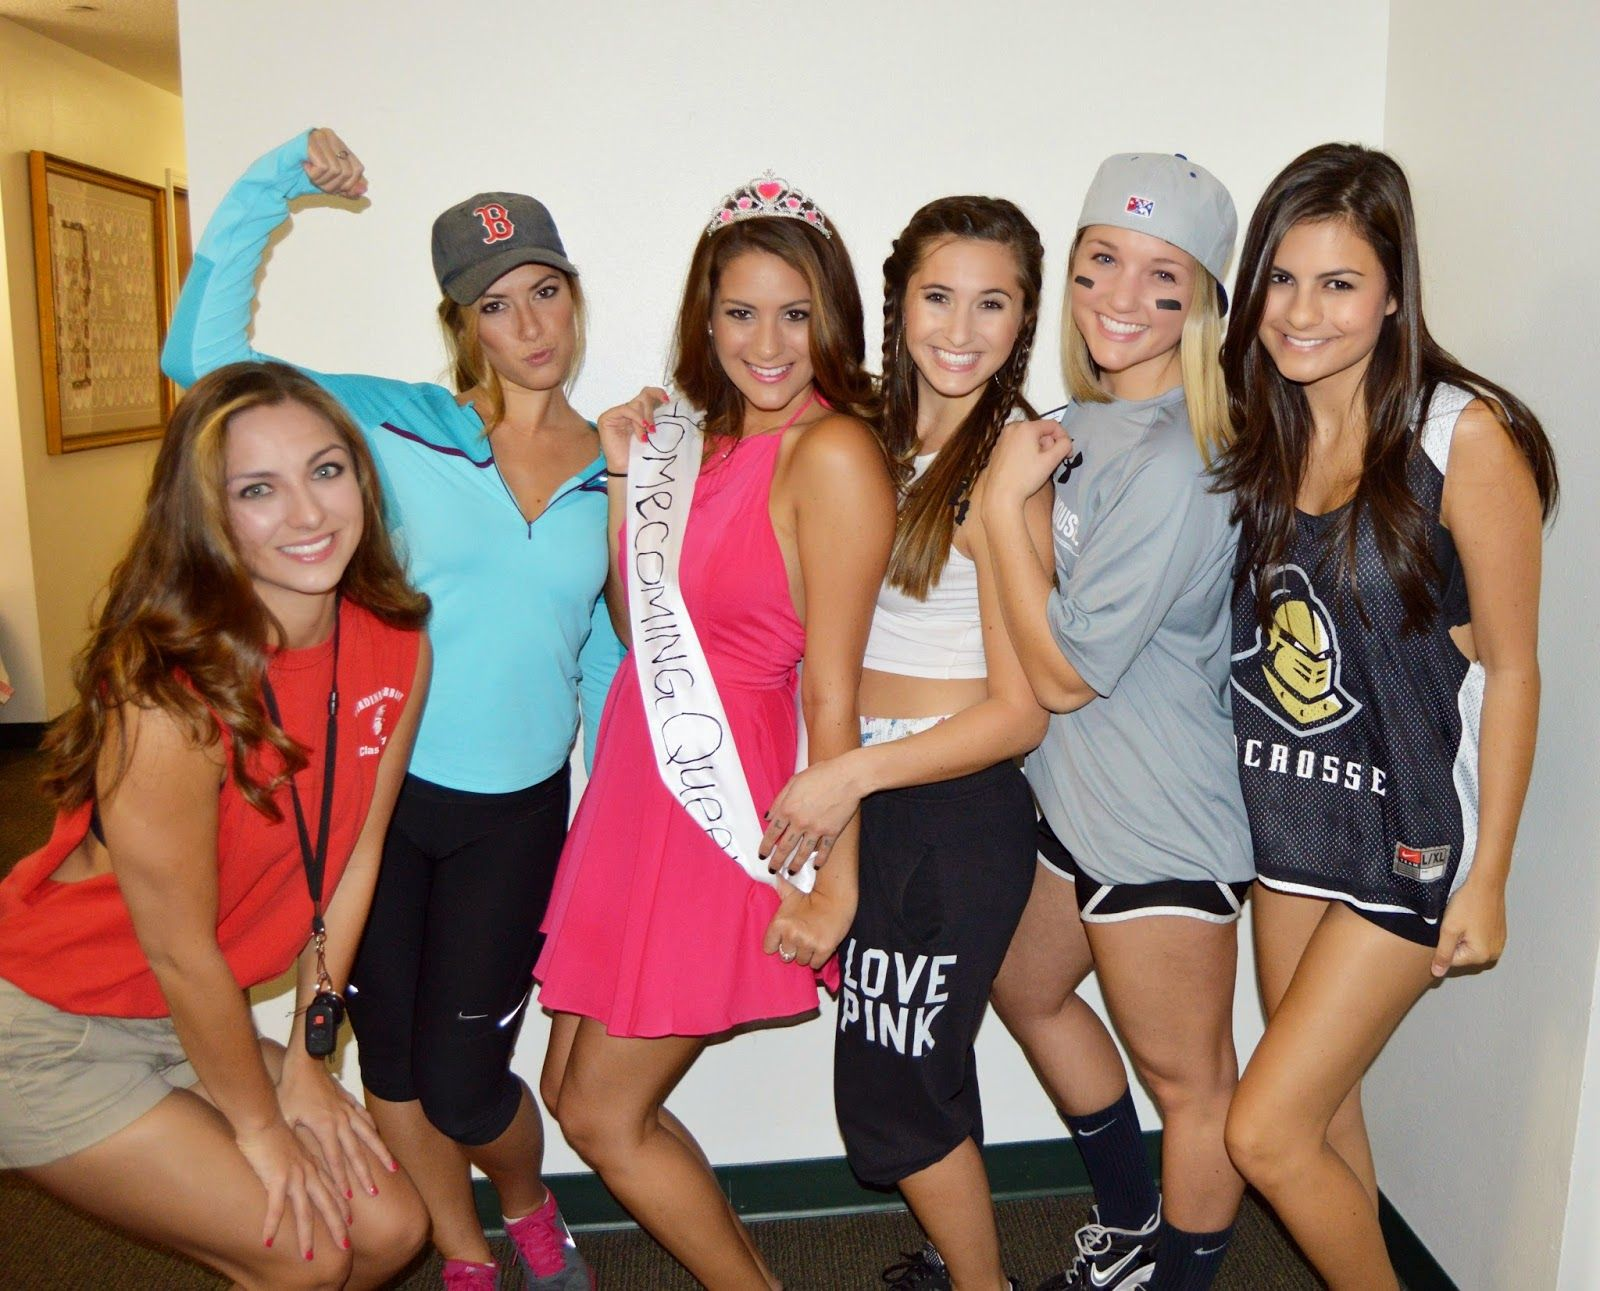 High school stereotypes social with friends: homecoming queen ...